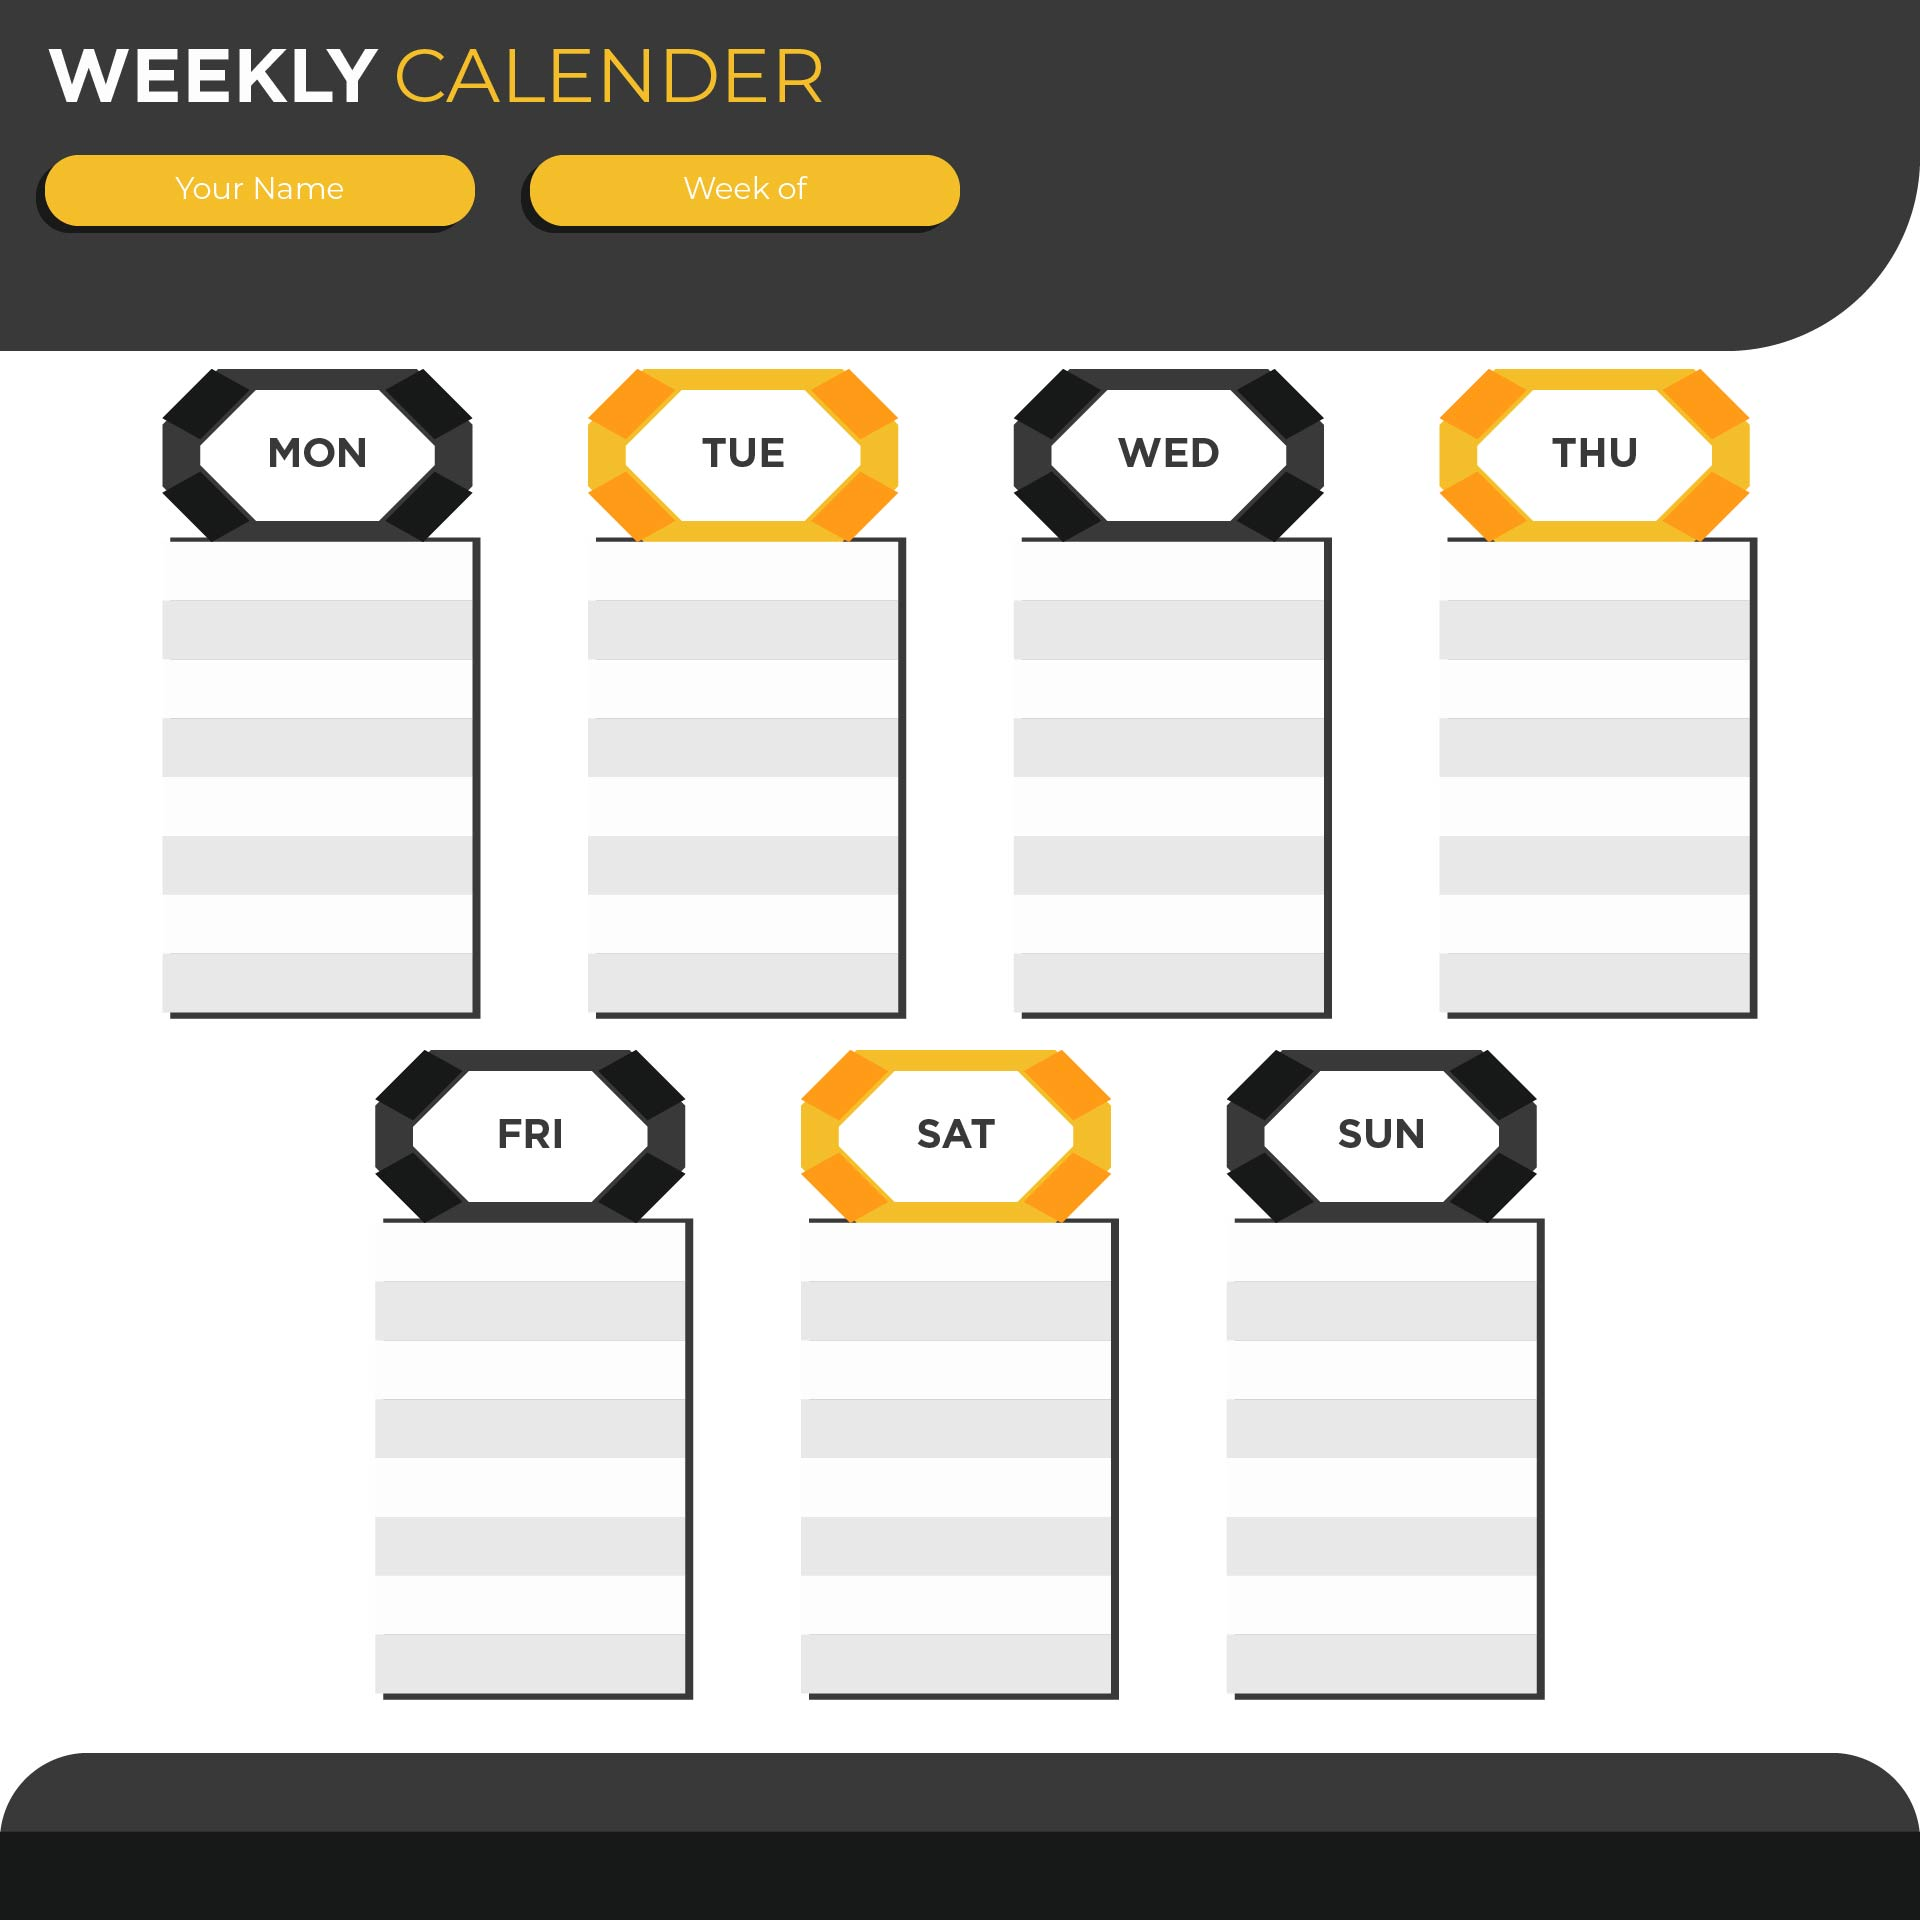 Weekly Calendar With Time Slots - Printable Calendar with Time Slots ...